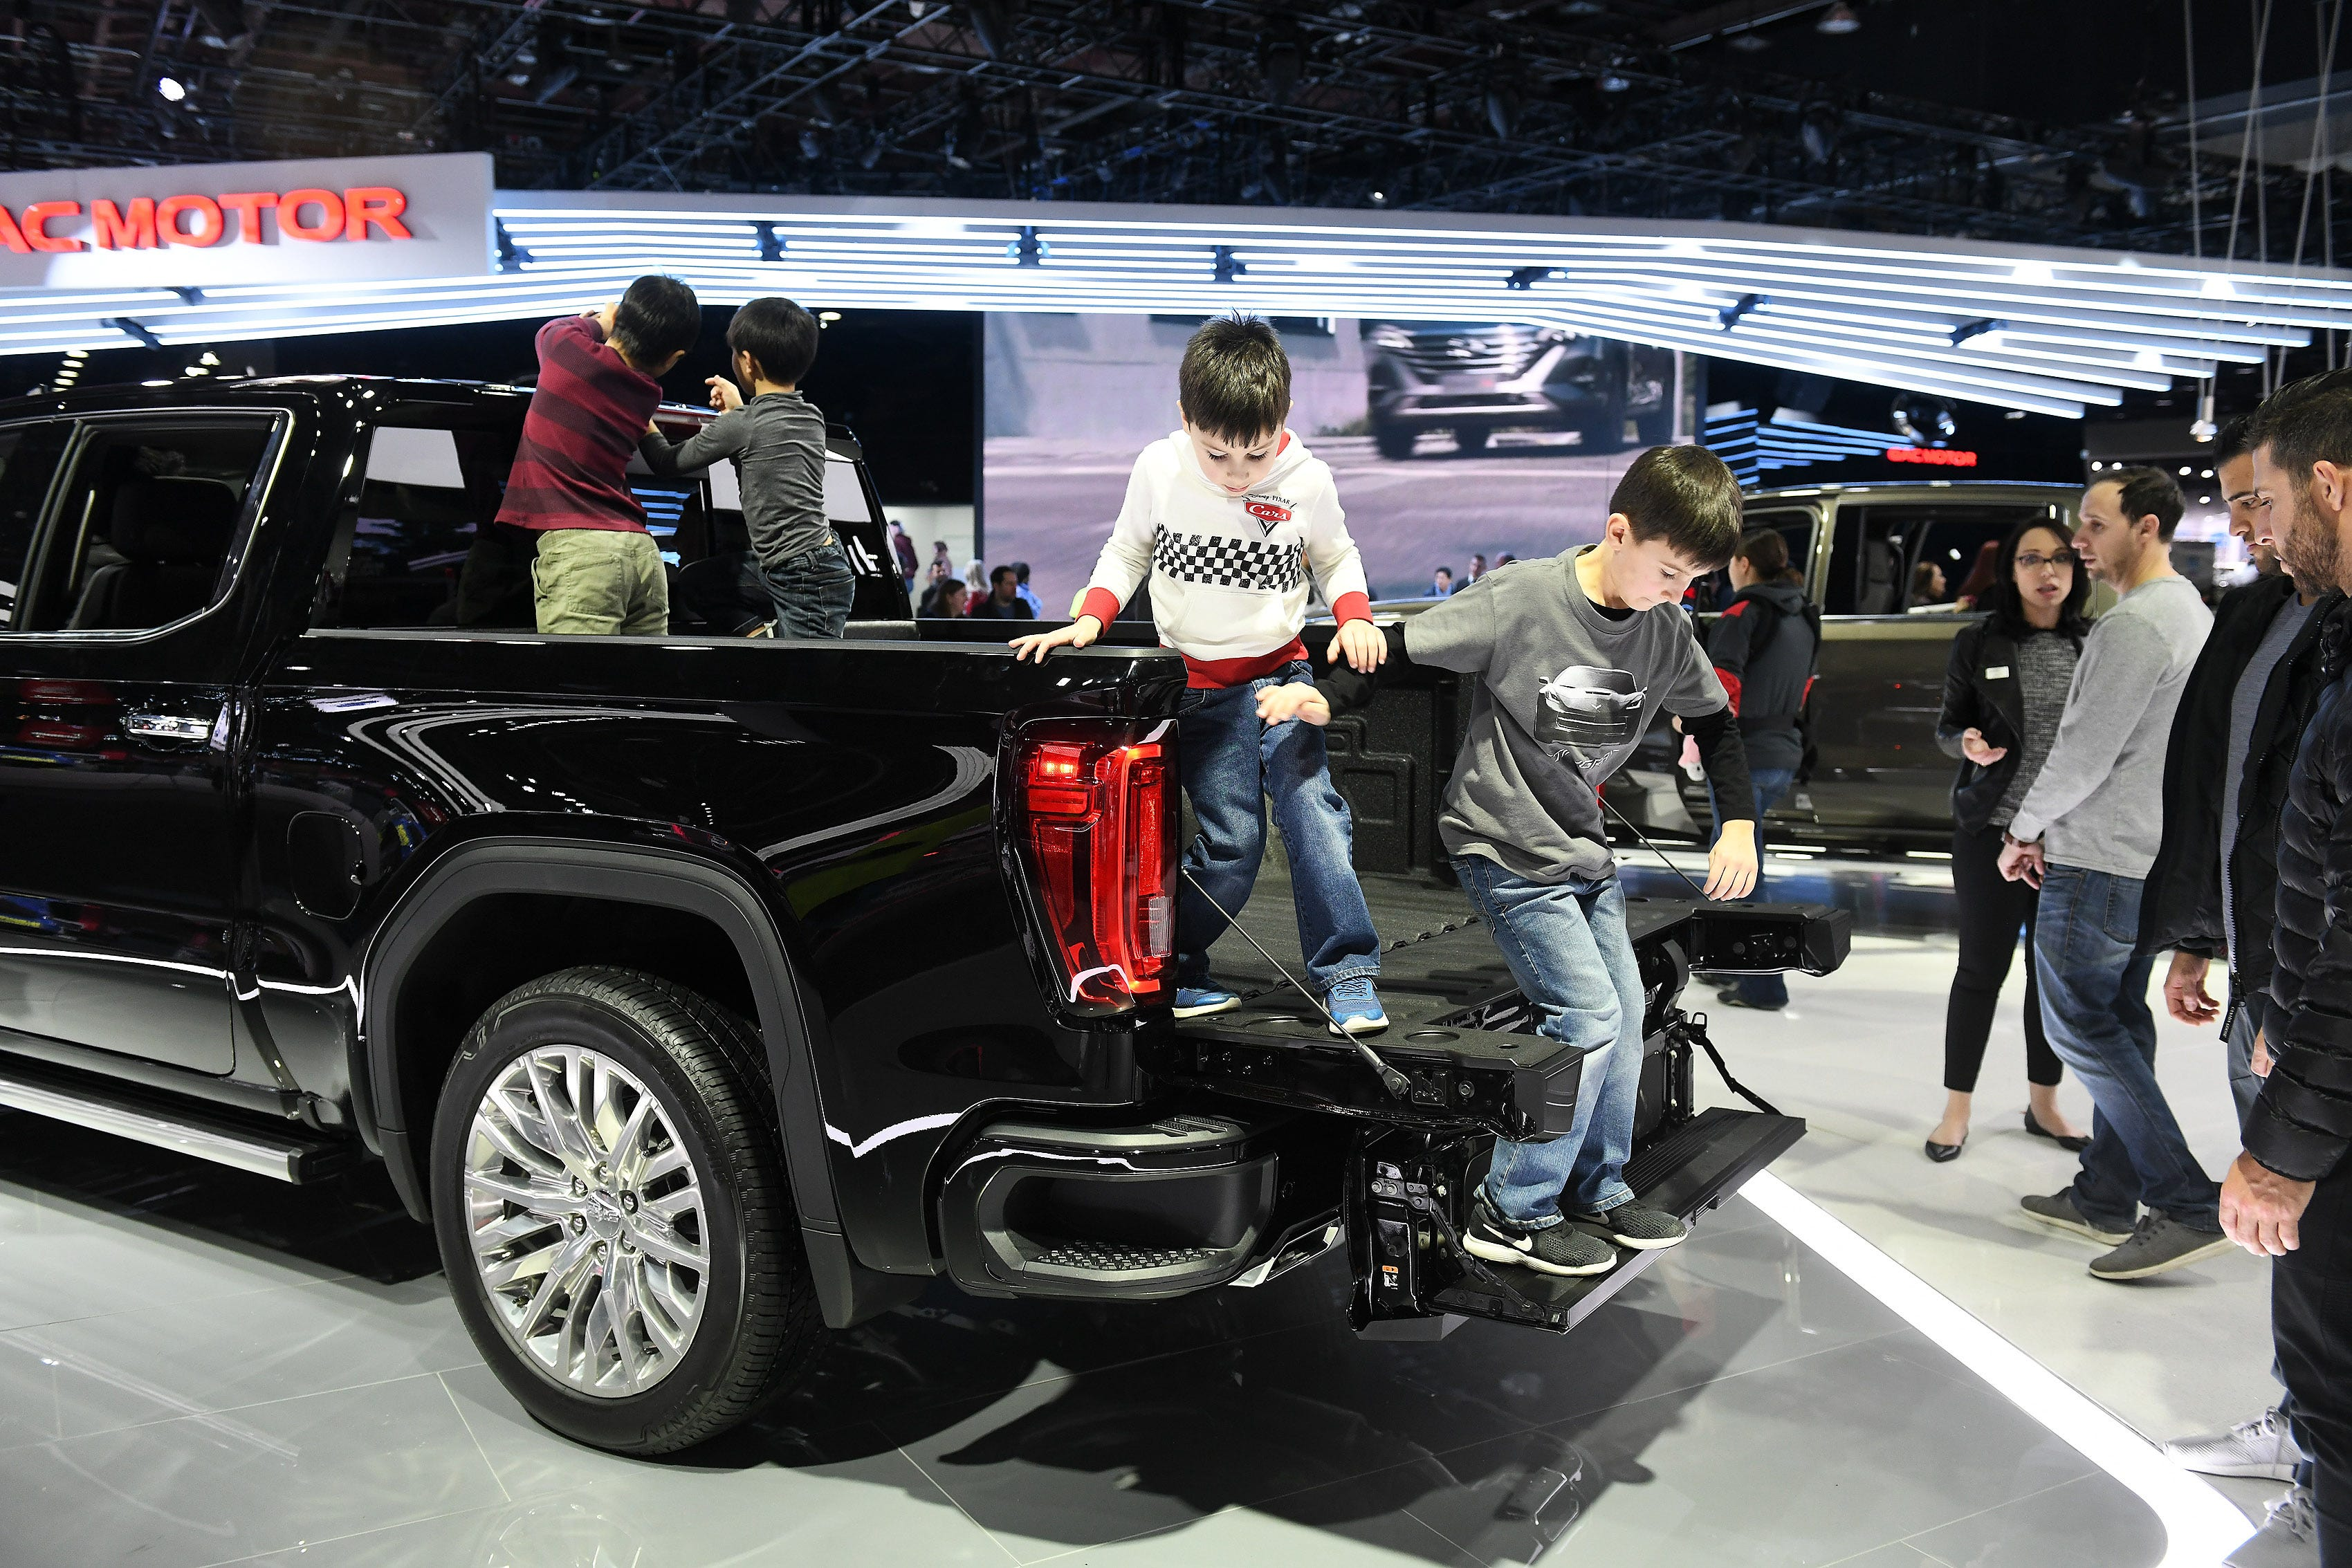 ' Auto show guests look forward to June move